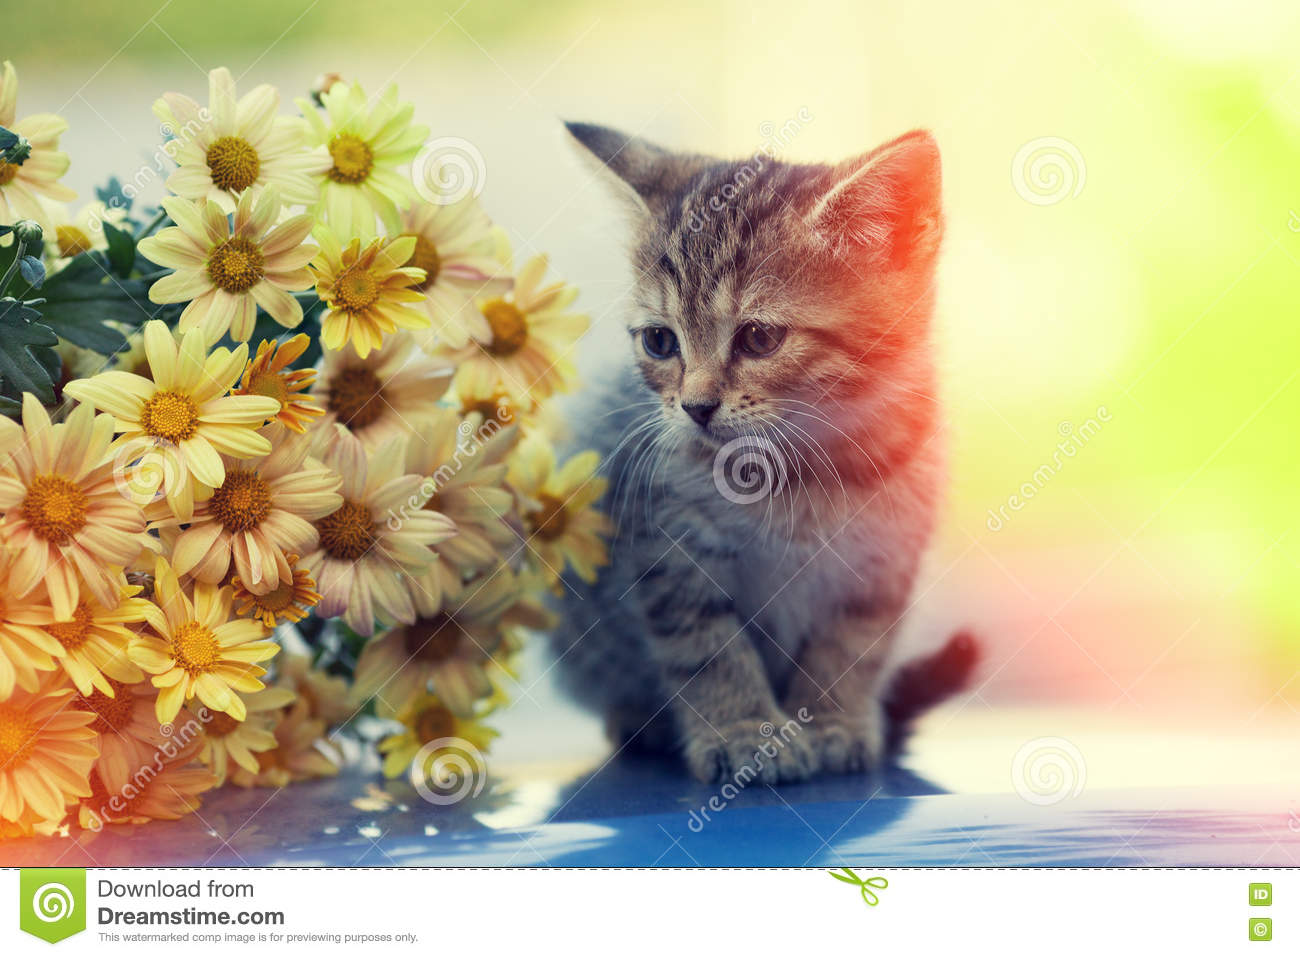 Kitten Looking At Bouquet Of Daisy Flowers Stock Photo - Image of ...